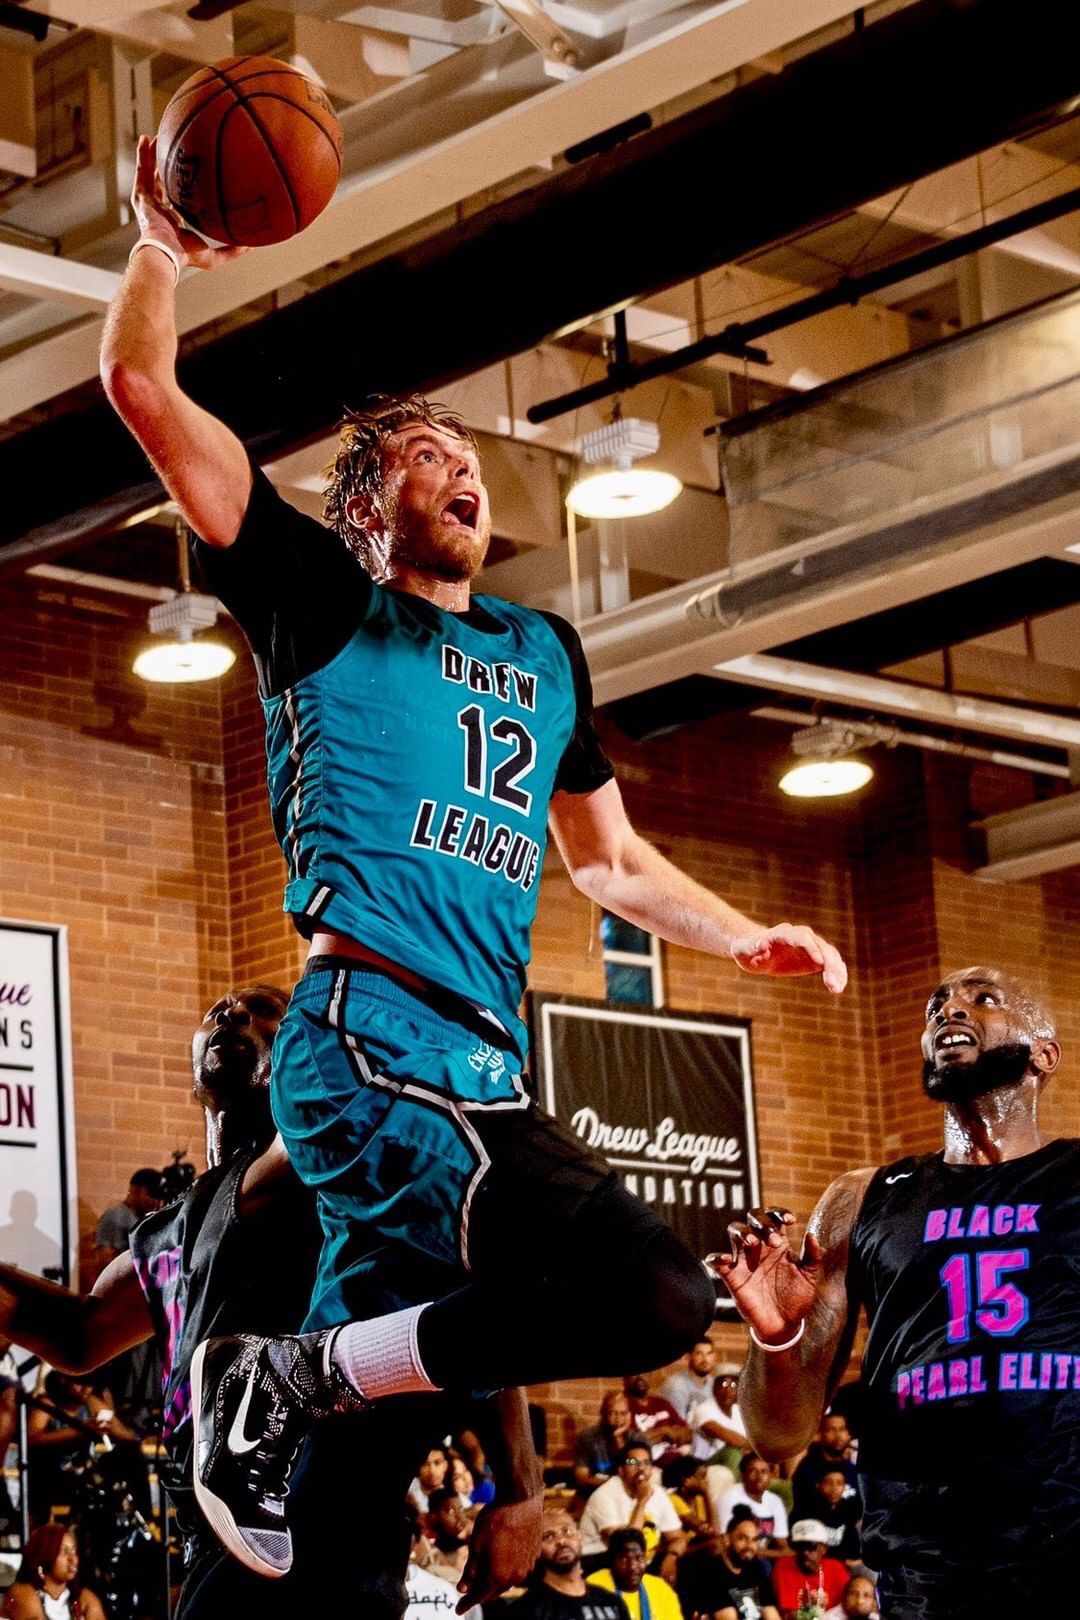 Justin Stommes Basketball Drew League 2019 Baxter Legacy, Los Angeles